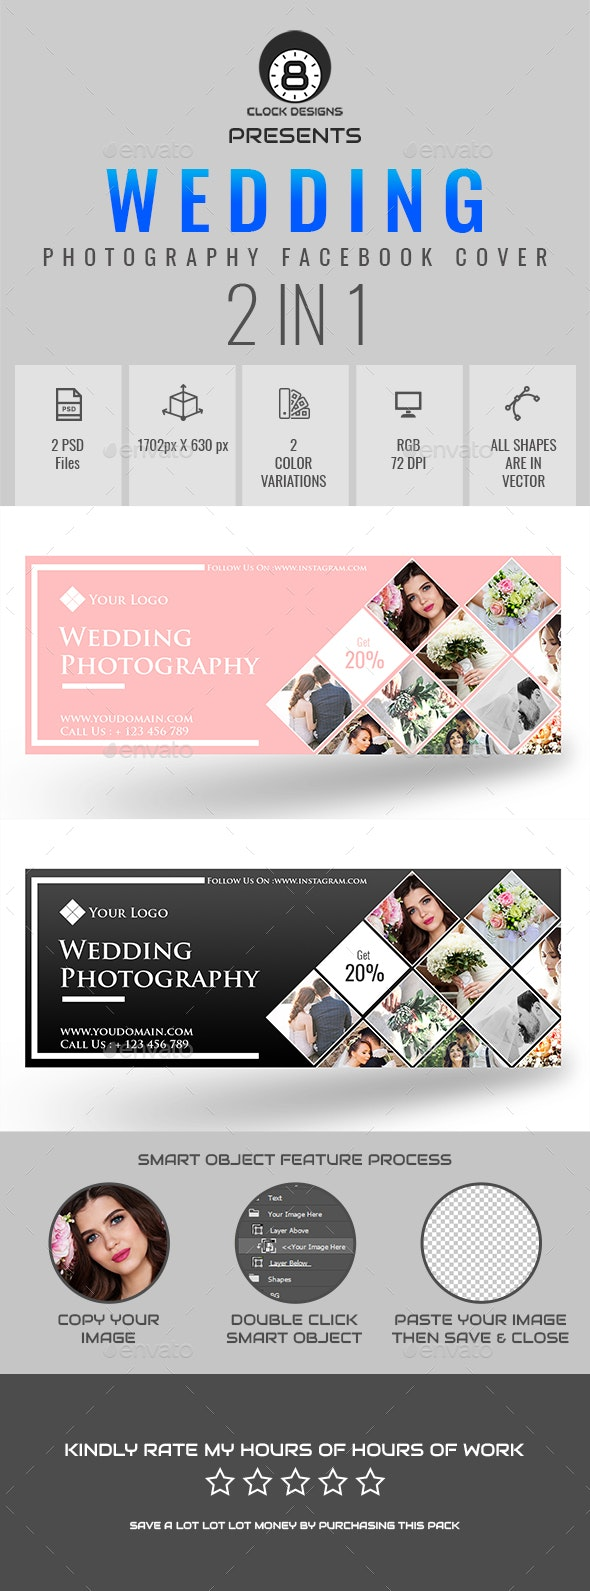 Wedding Photography Facebook Timeline Cover ( 2 in 1 ) - Facebook Timeline Covers Social Media